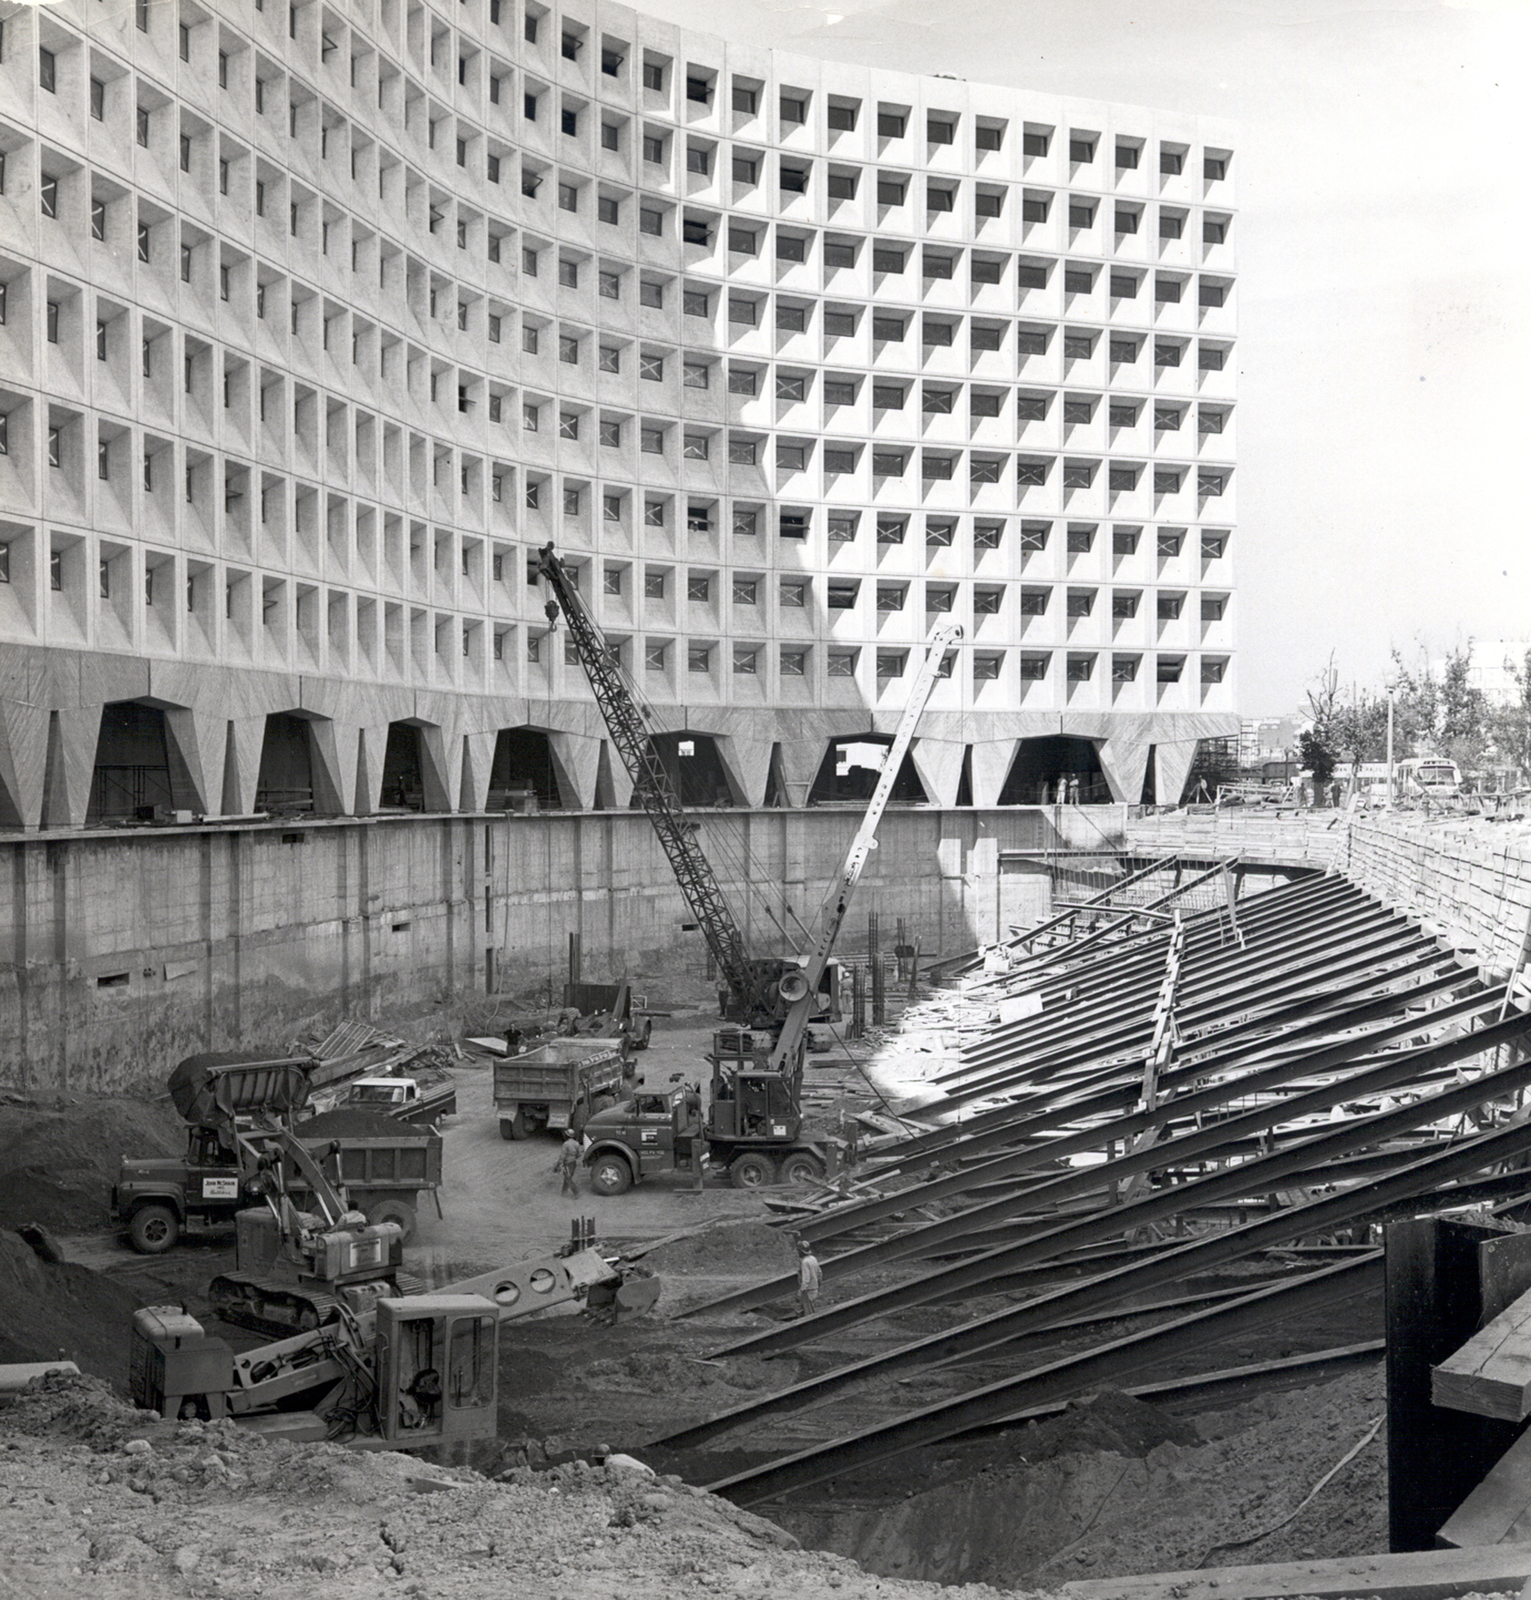 From historical photo display in HUD headquarters hallway:  Robert C. Weaver Federal Building under construction, Washington, D.C.